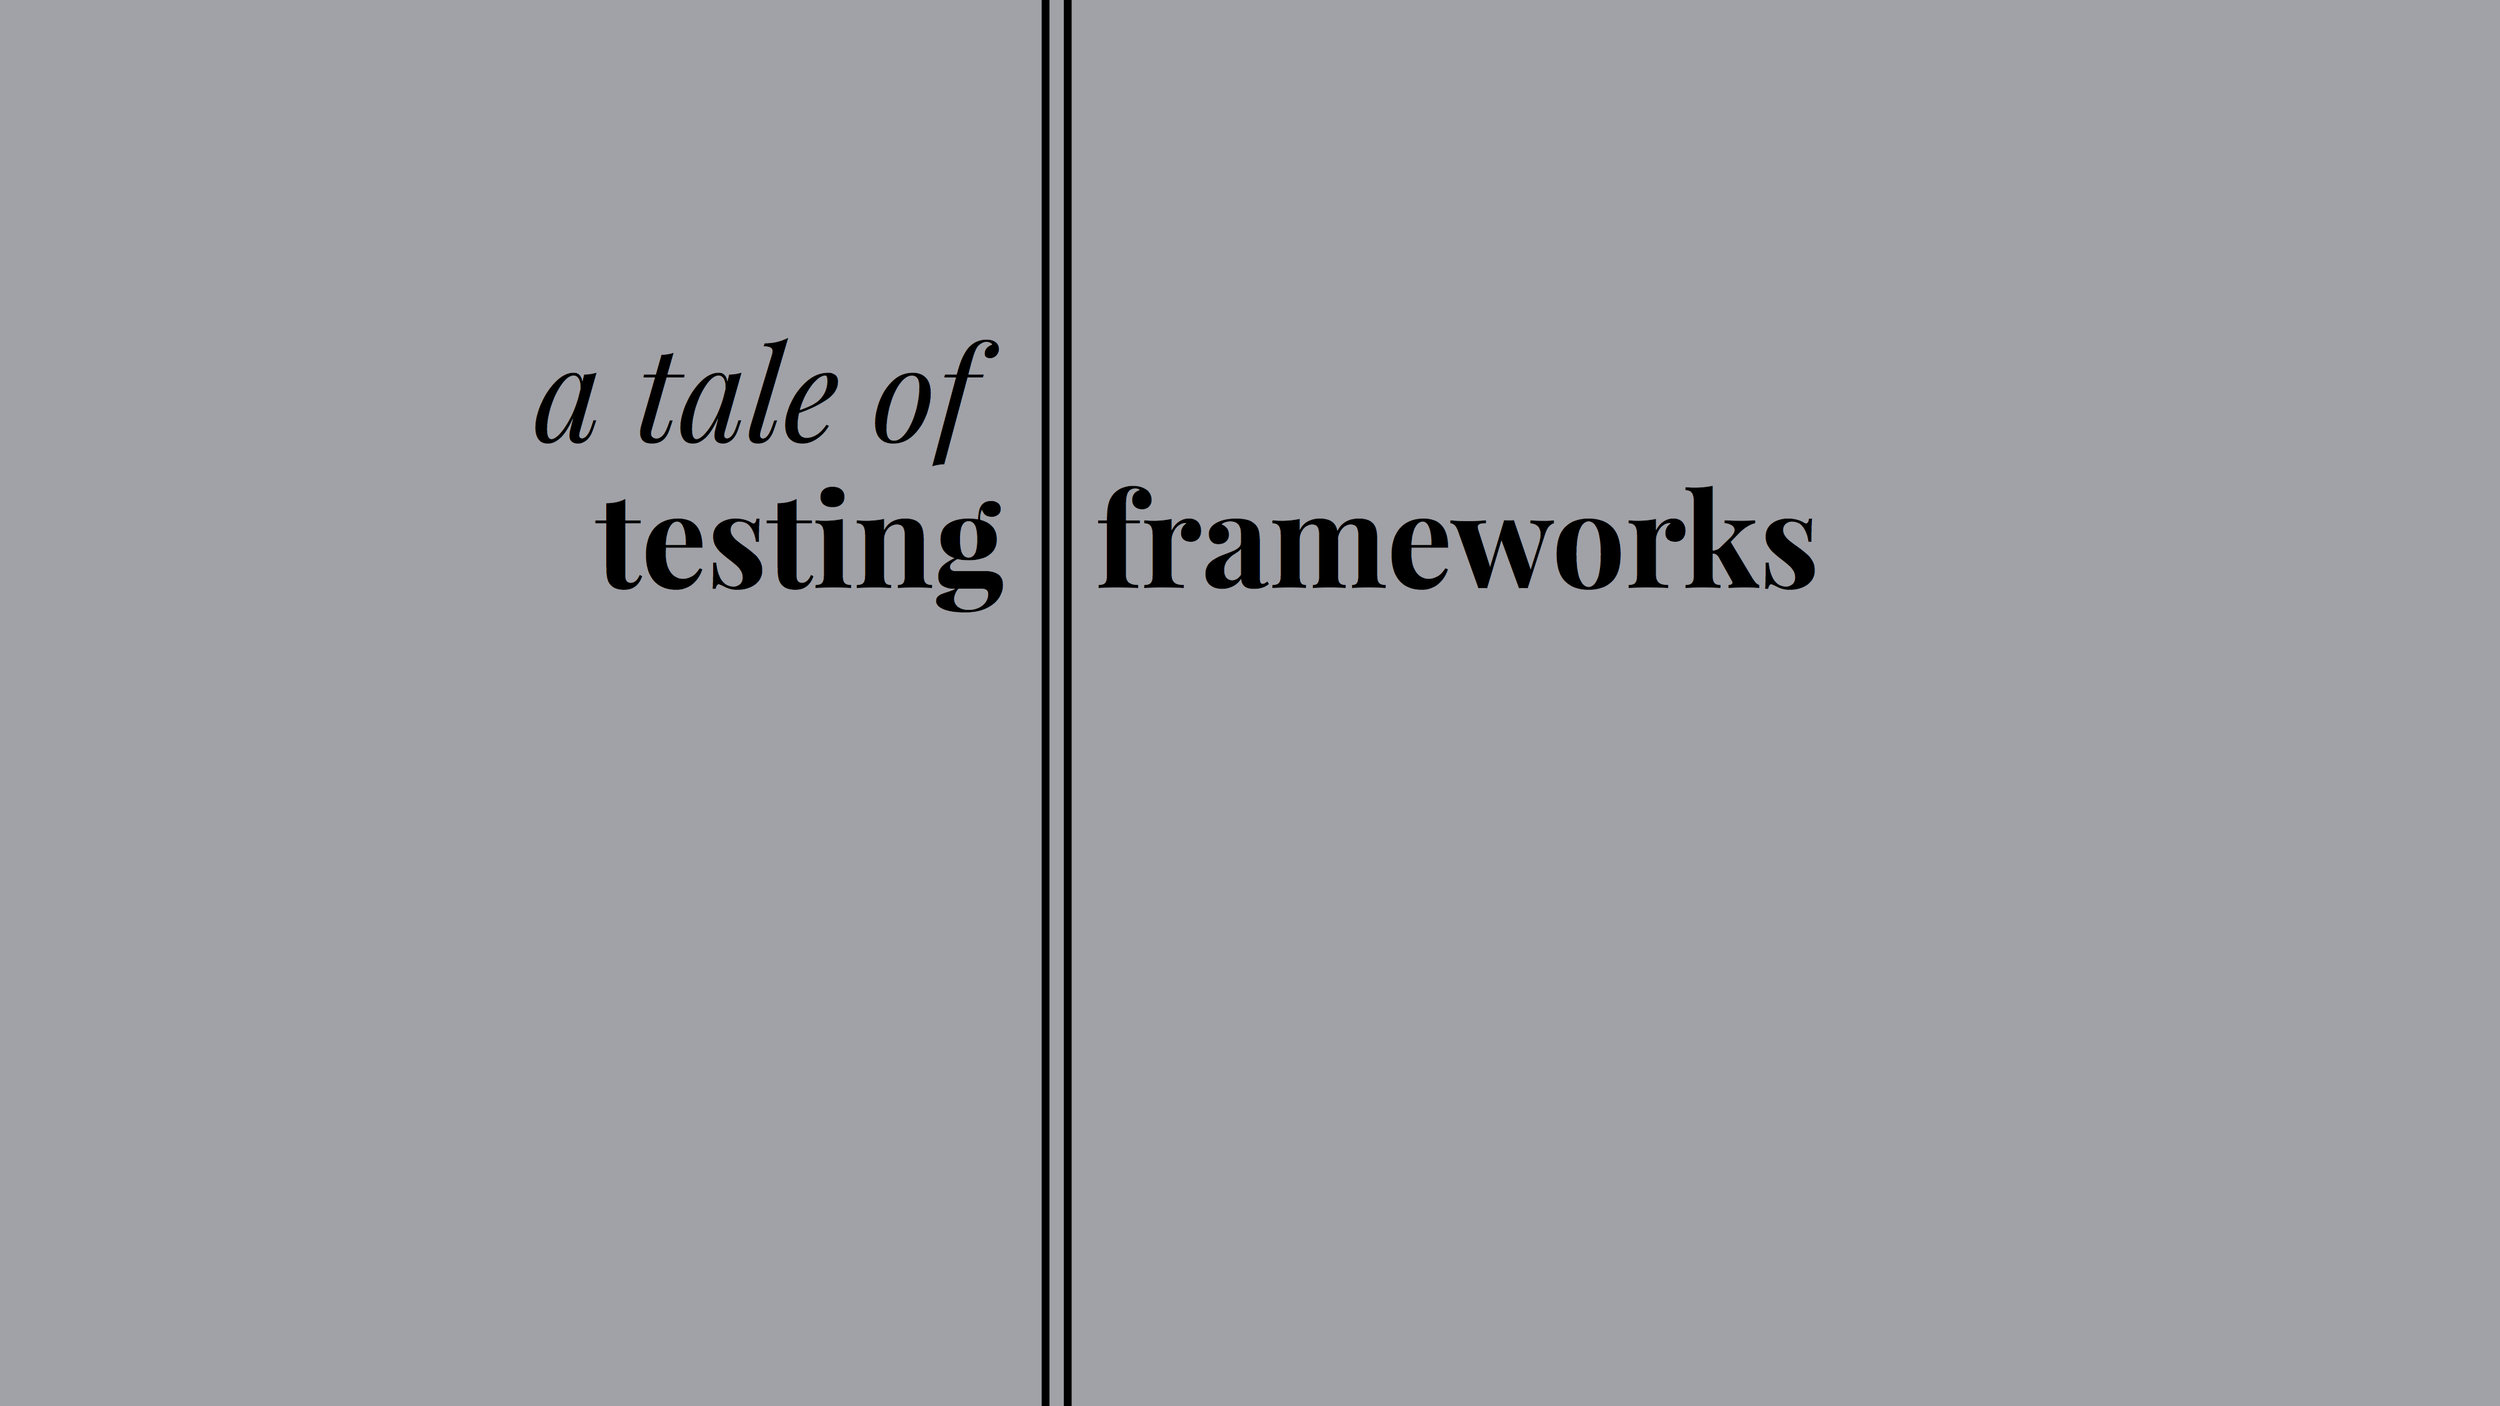 A_tale_of_two_testing_frameworks.jpg